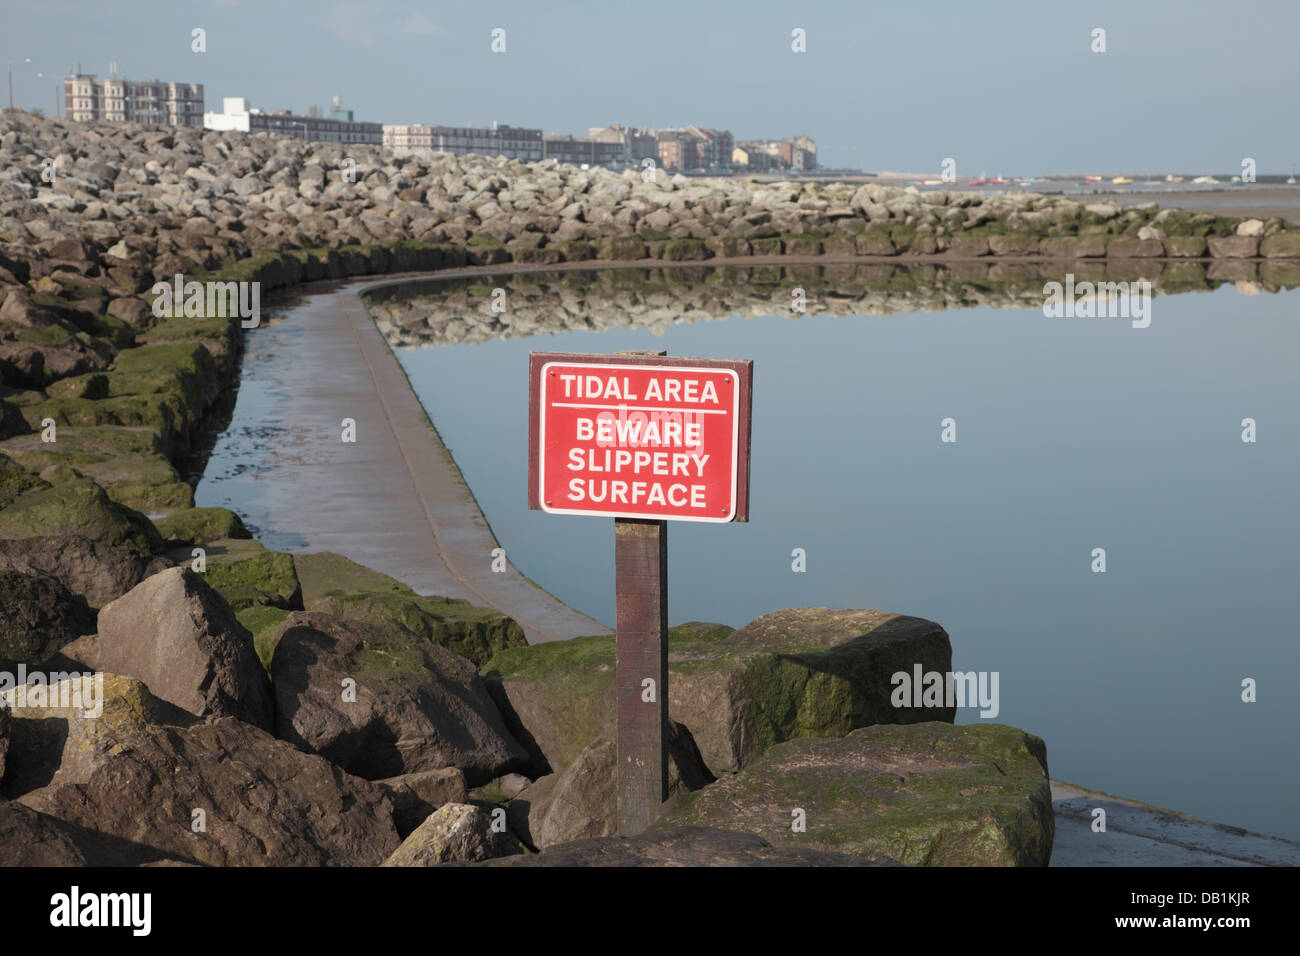 Sign 'Tidal Area-Beware Slippery Surface' next to boating pool - Stock Image